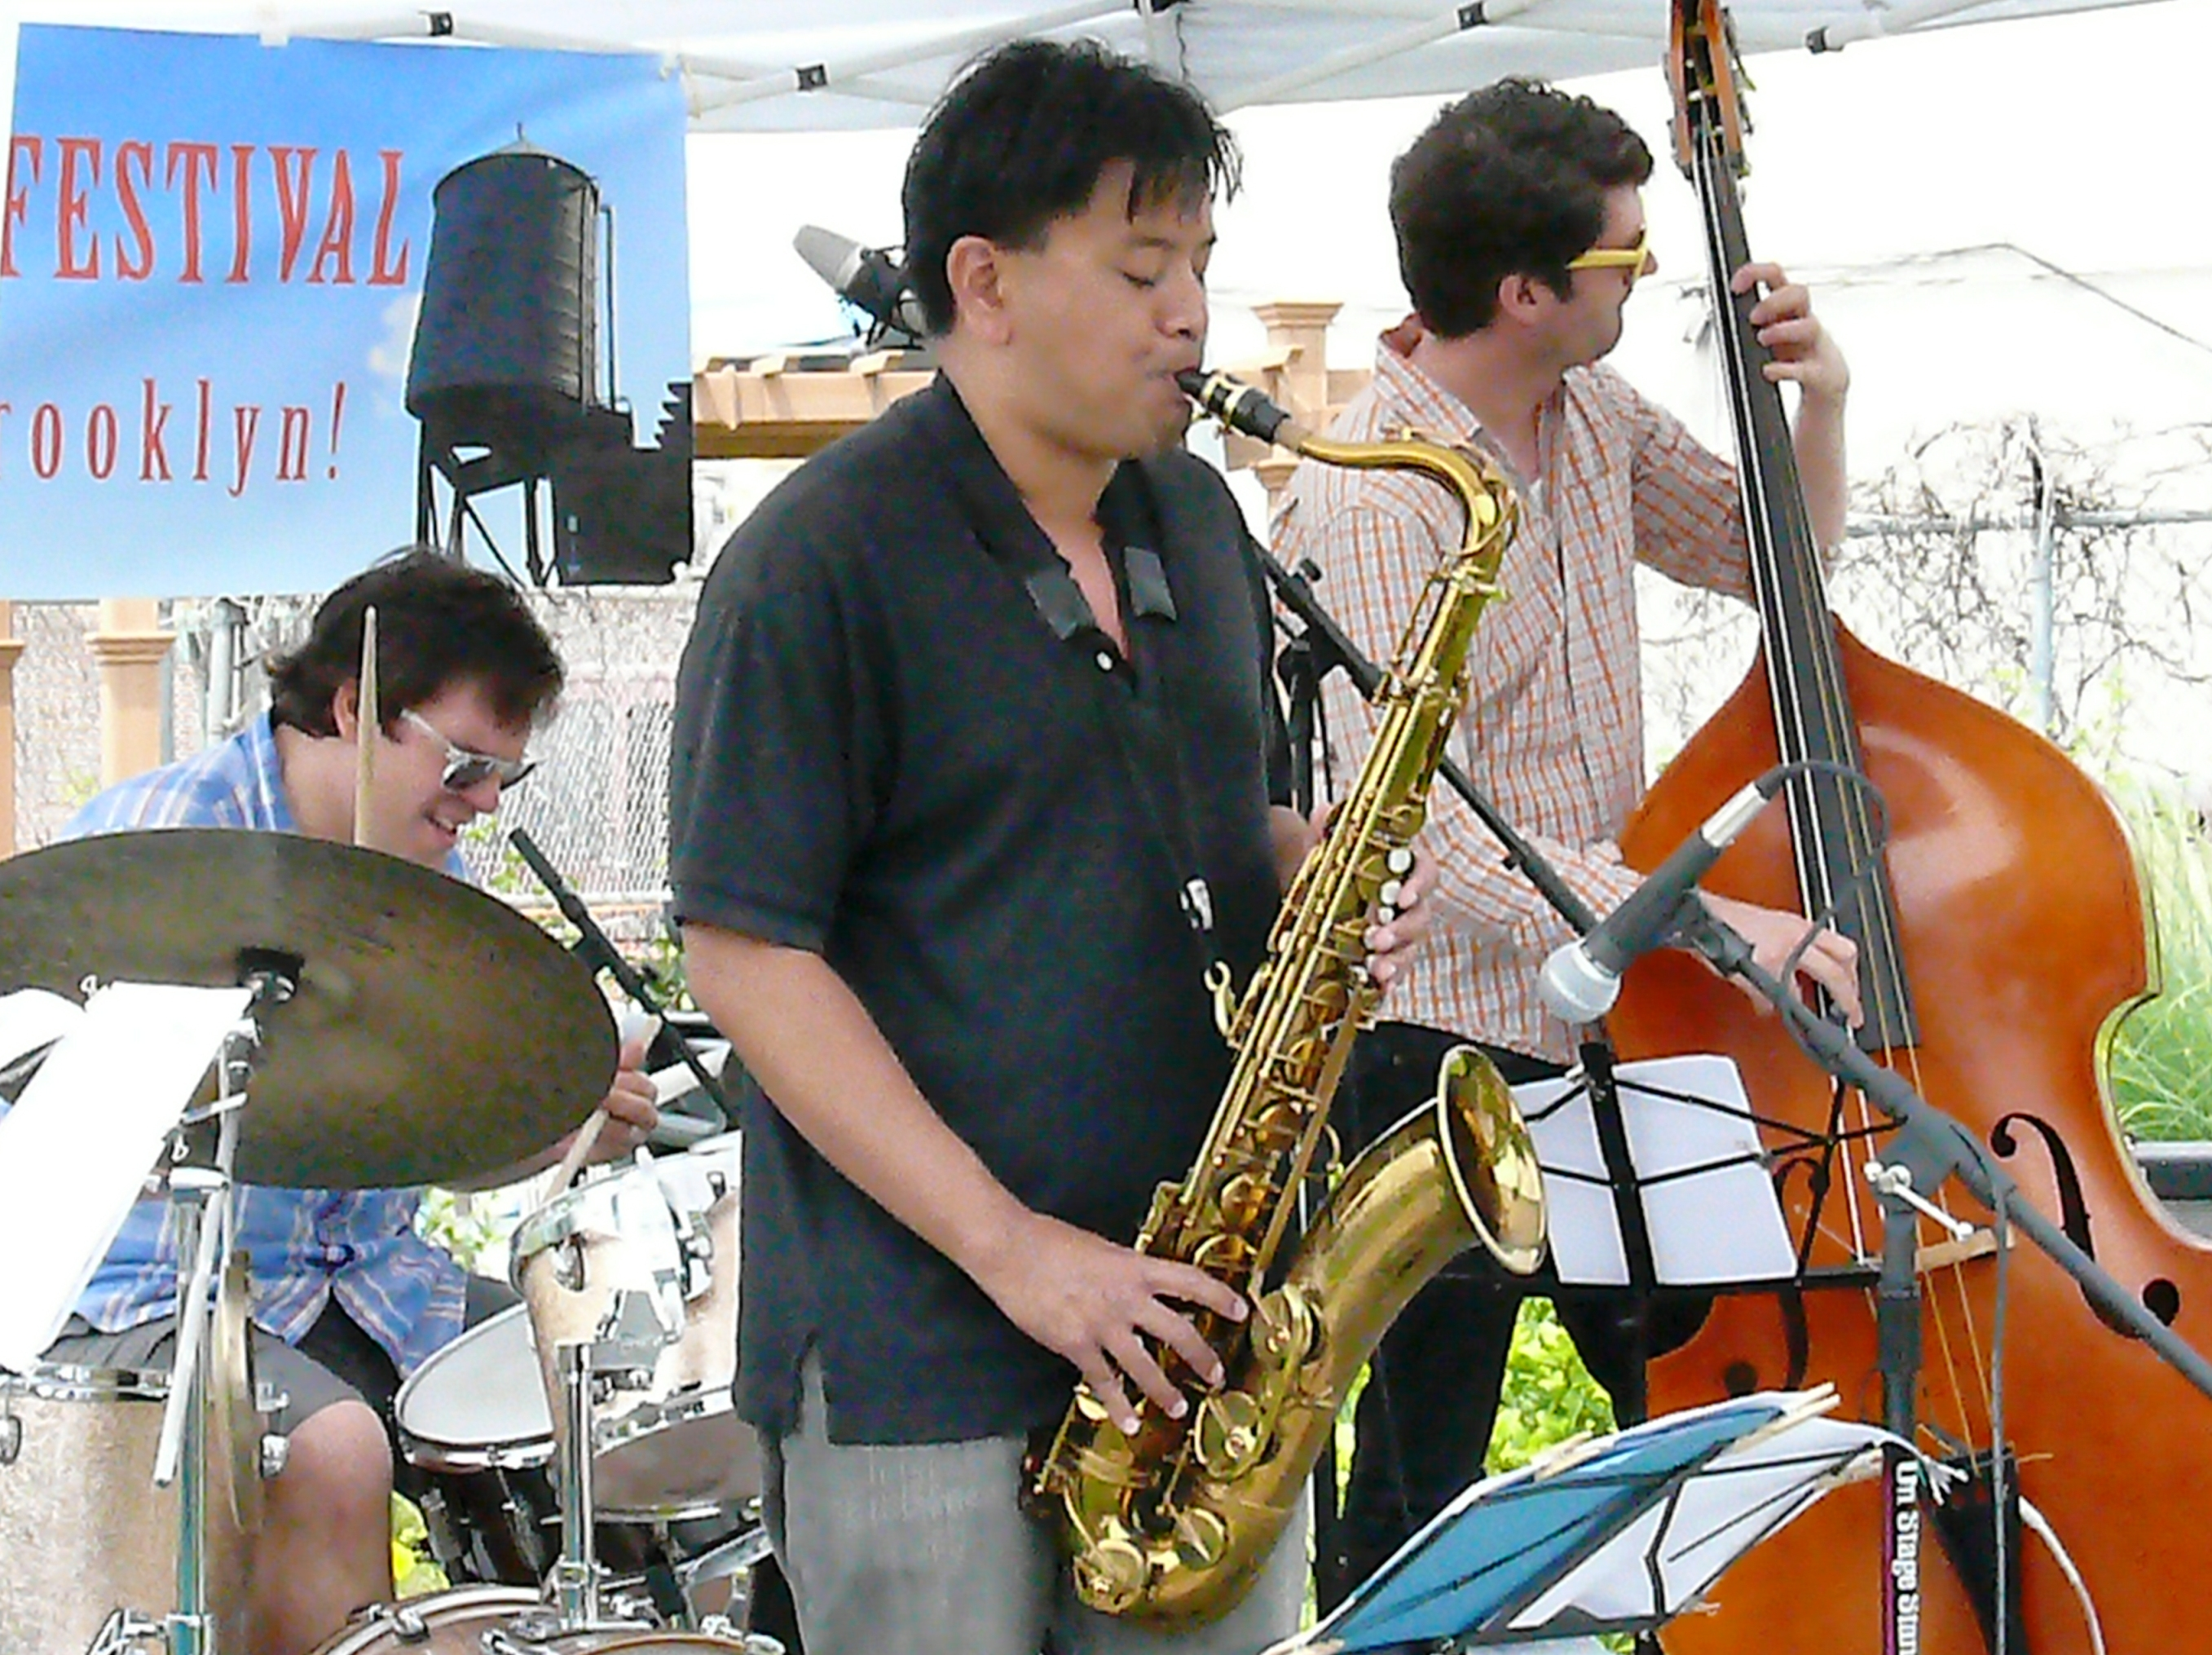 Mike pride, jon irabagon and peter bitenc at red hook jazz festival, new york in june 2013